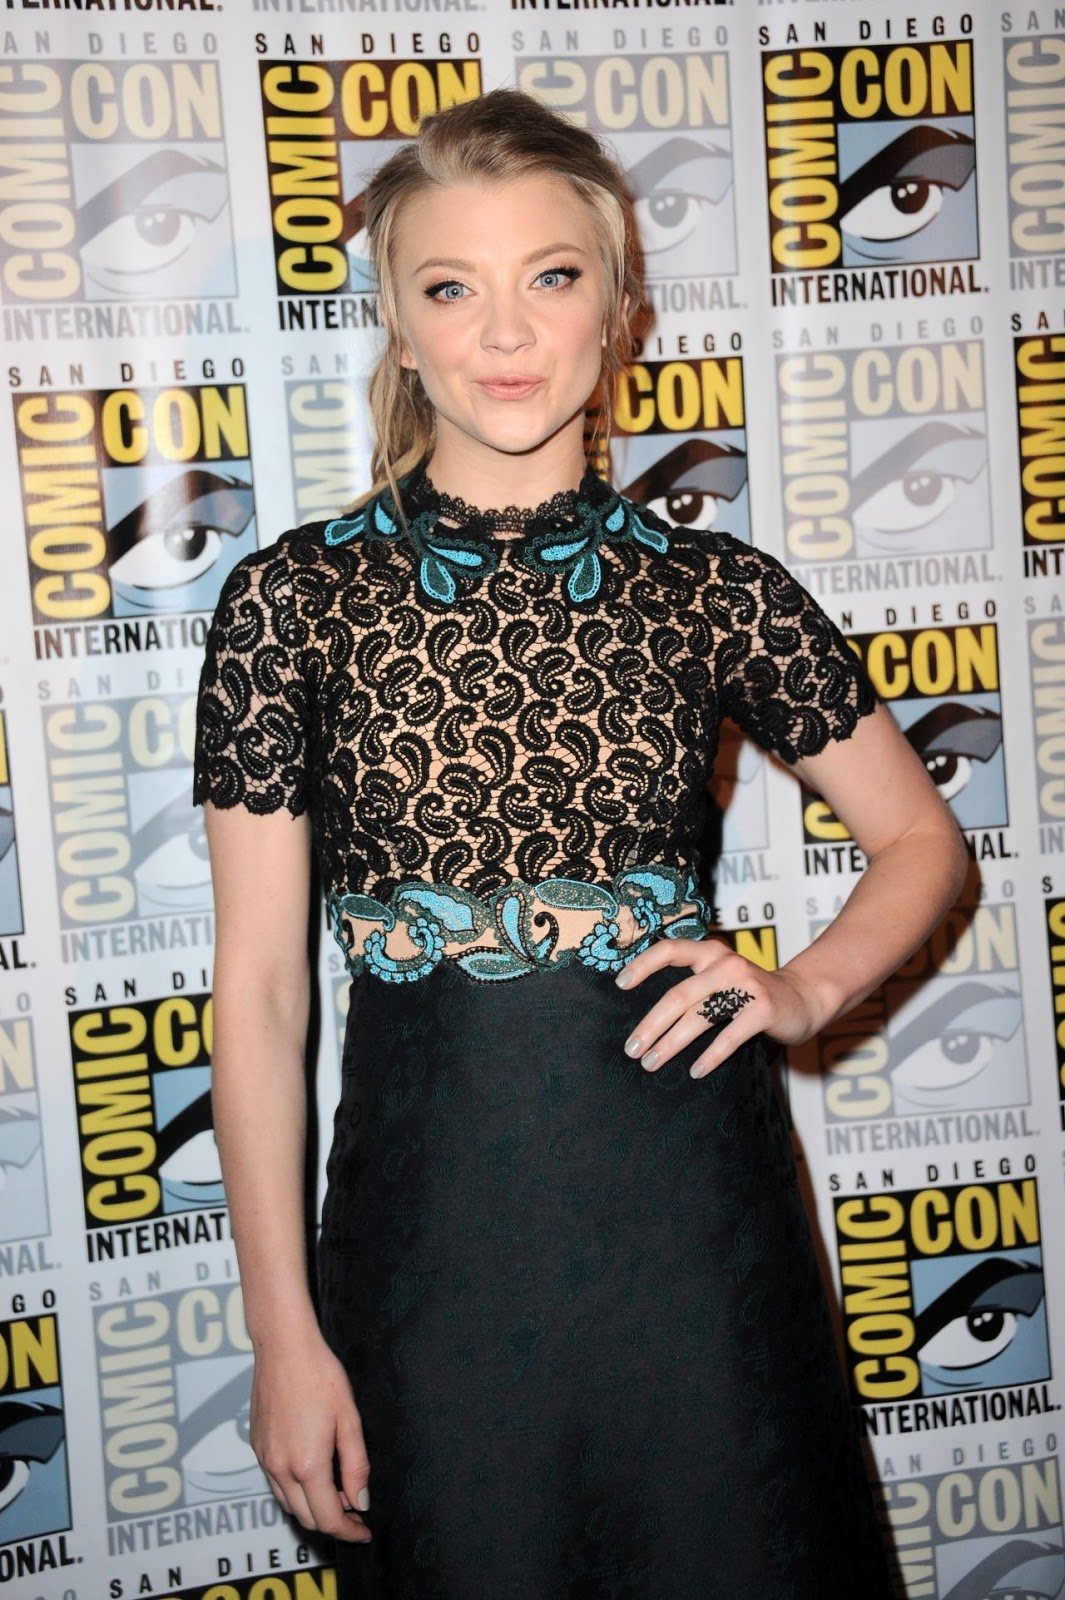 Natalie Dormer is sophisticated as she promotes 'Patient Zero' at Comic-Con 2015